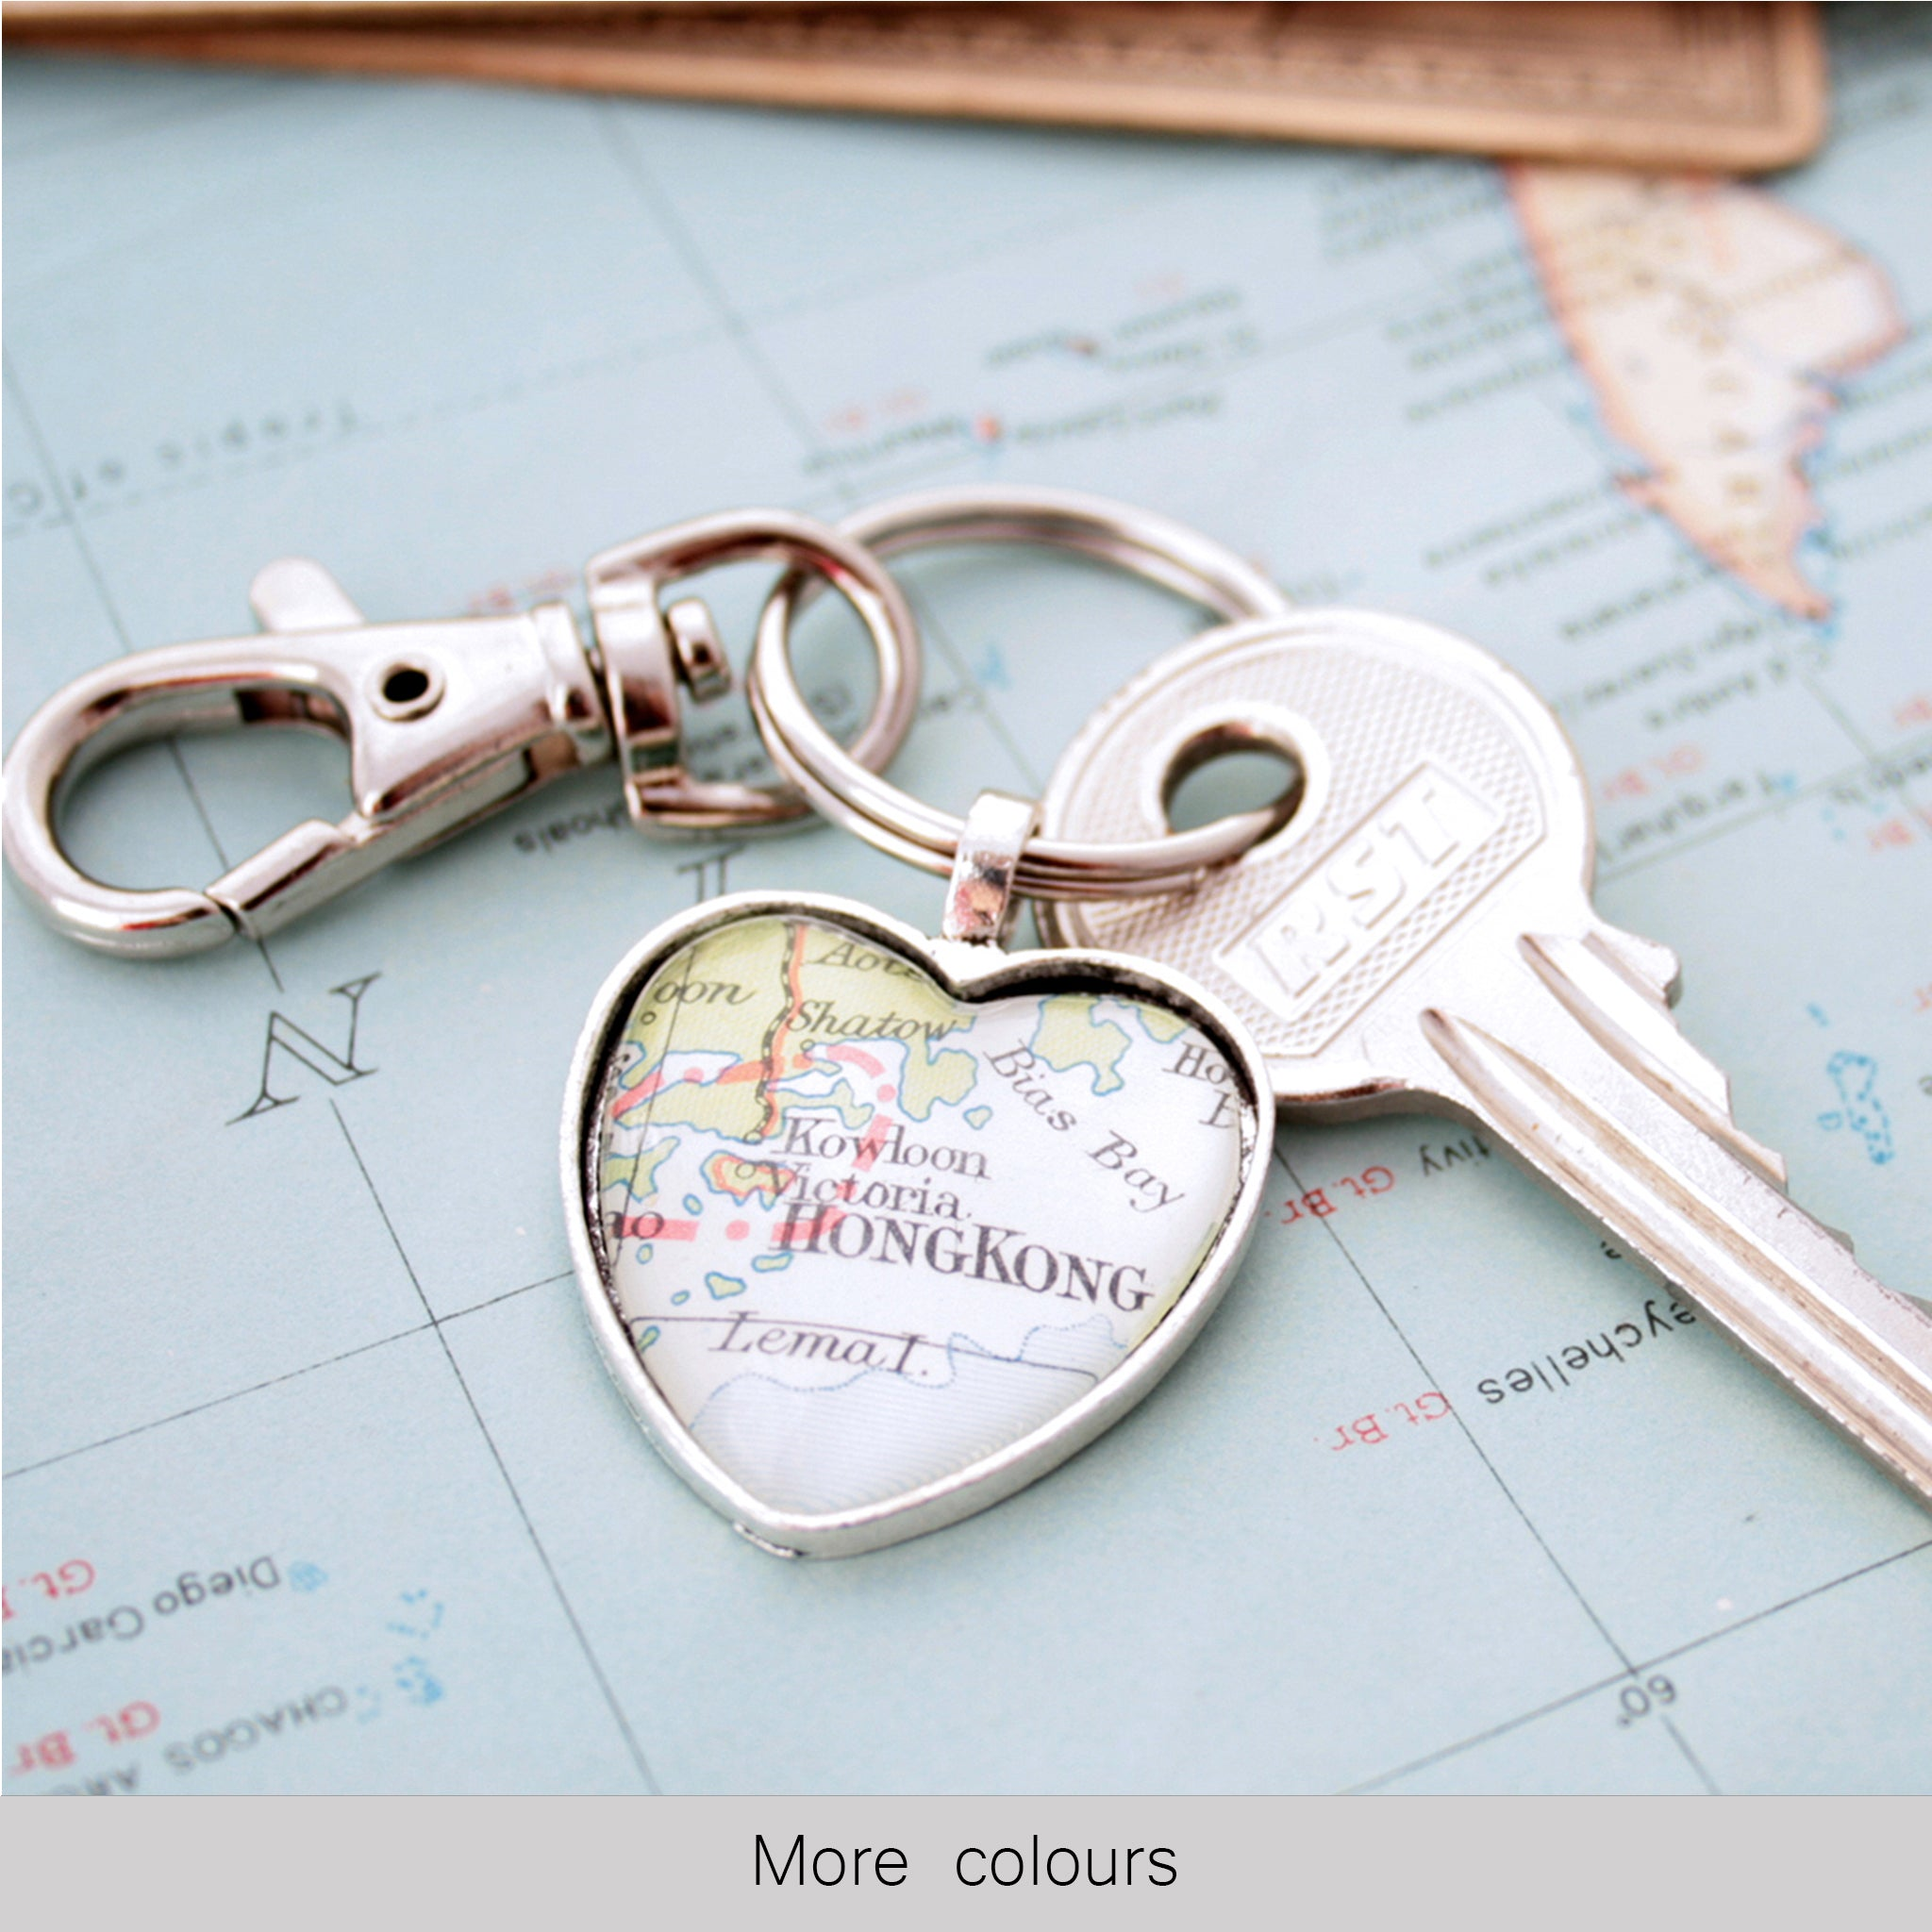 Heart shaped keychain in silver tone featuring map of Hong Kong